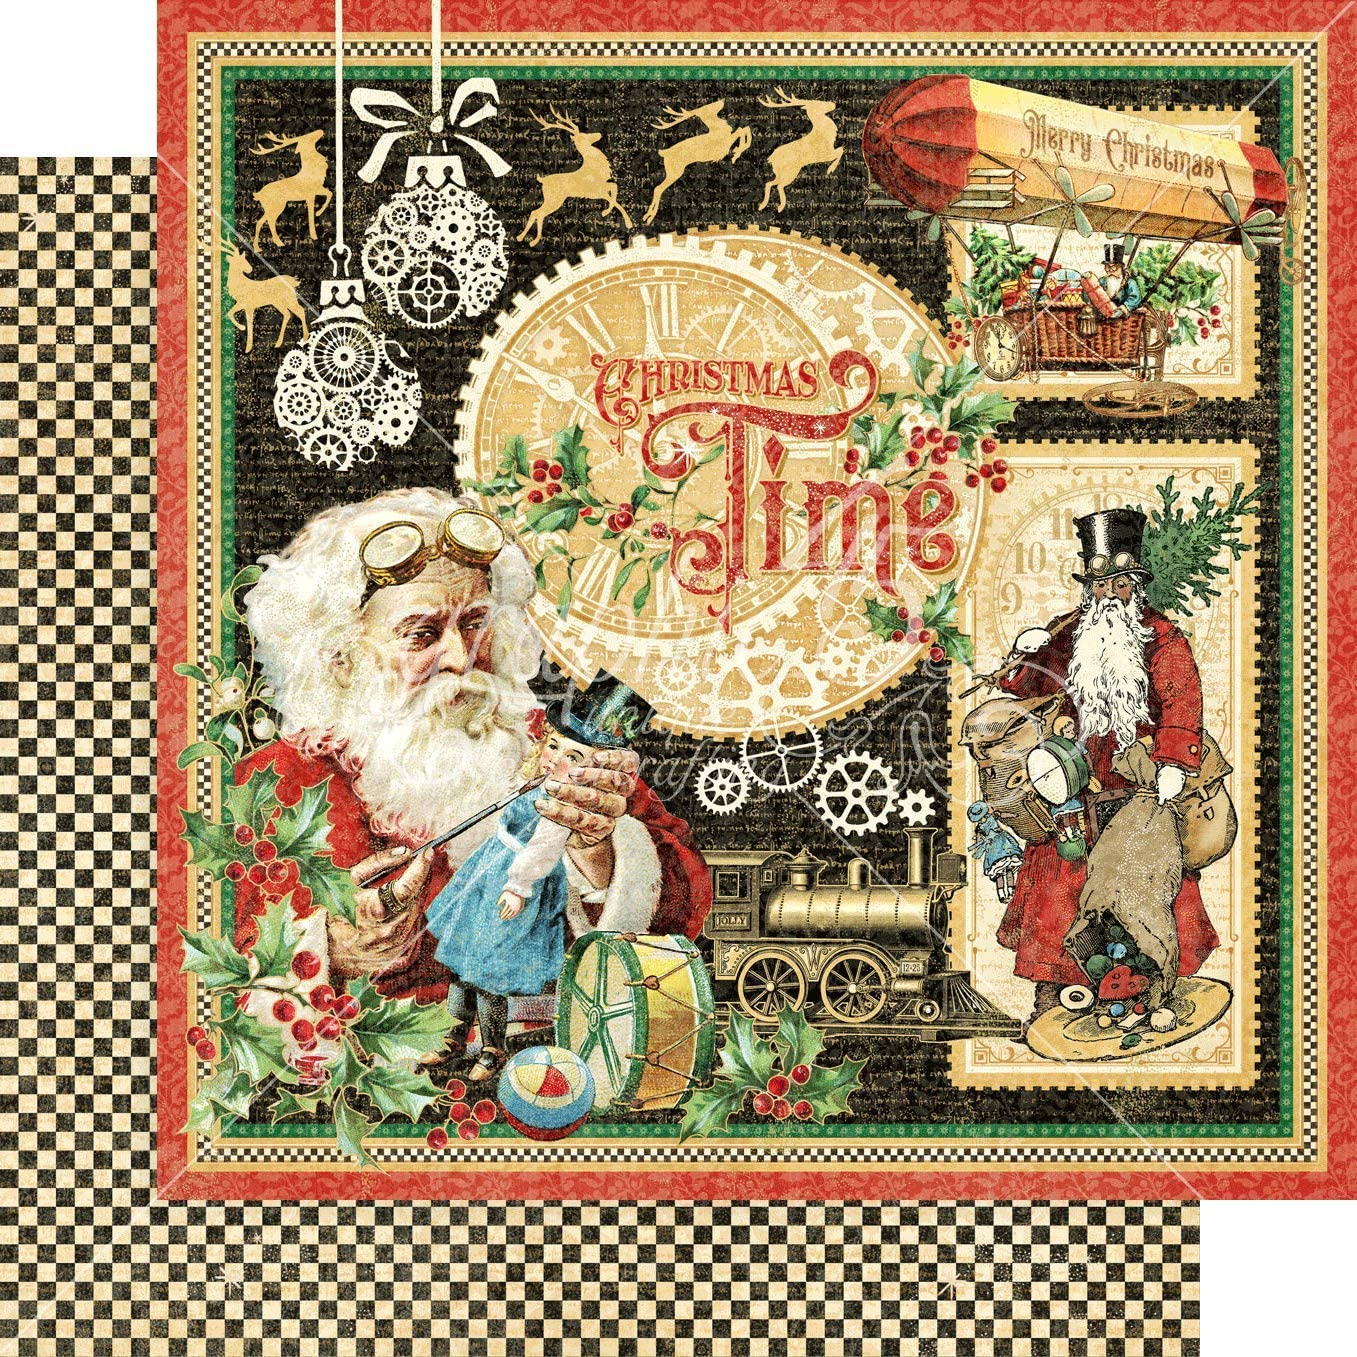 2 Items 12x12 Decorative Papers Graphic 45 Christmas Time Collection Pack and Patterns /& Solids Pad